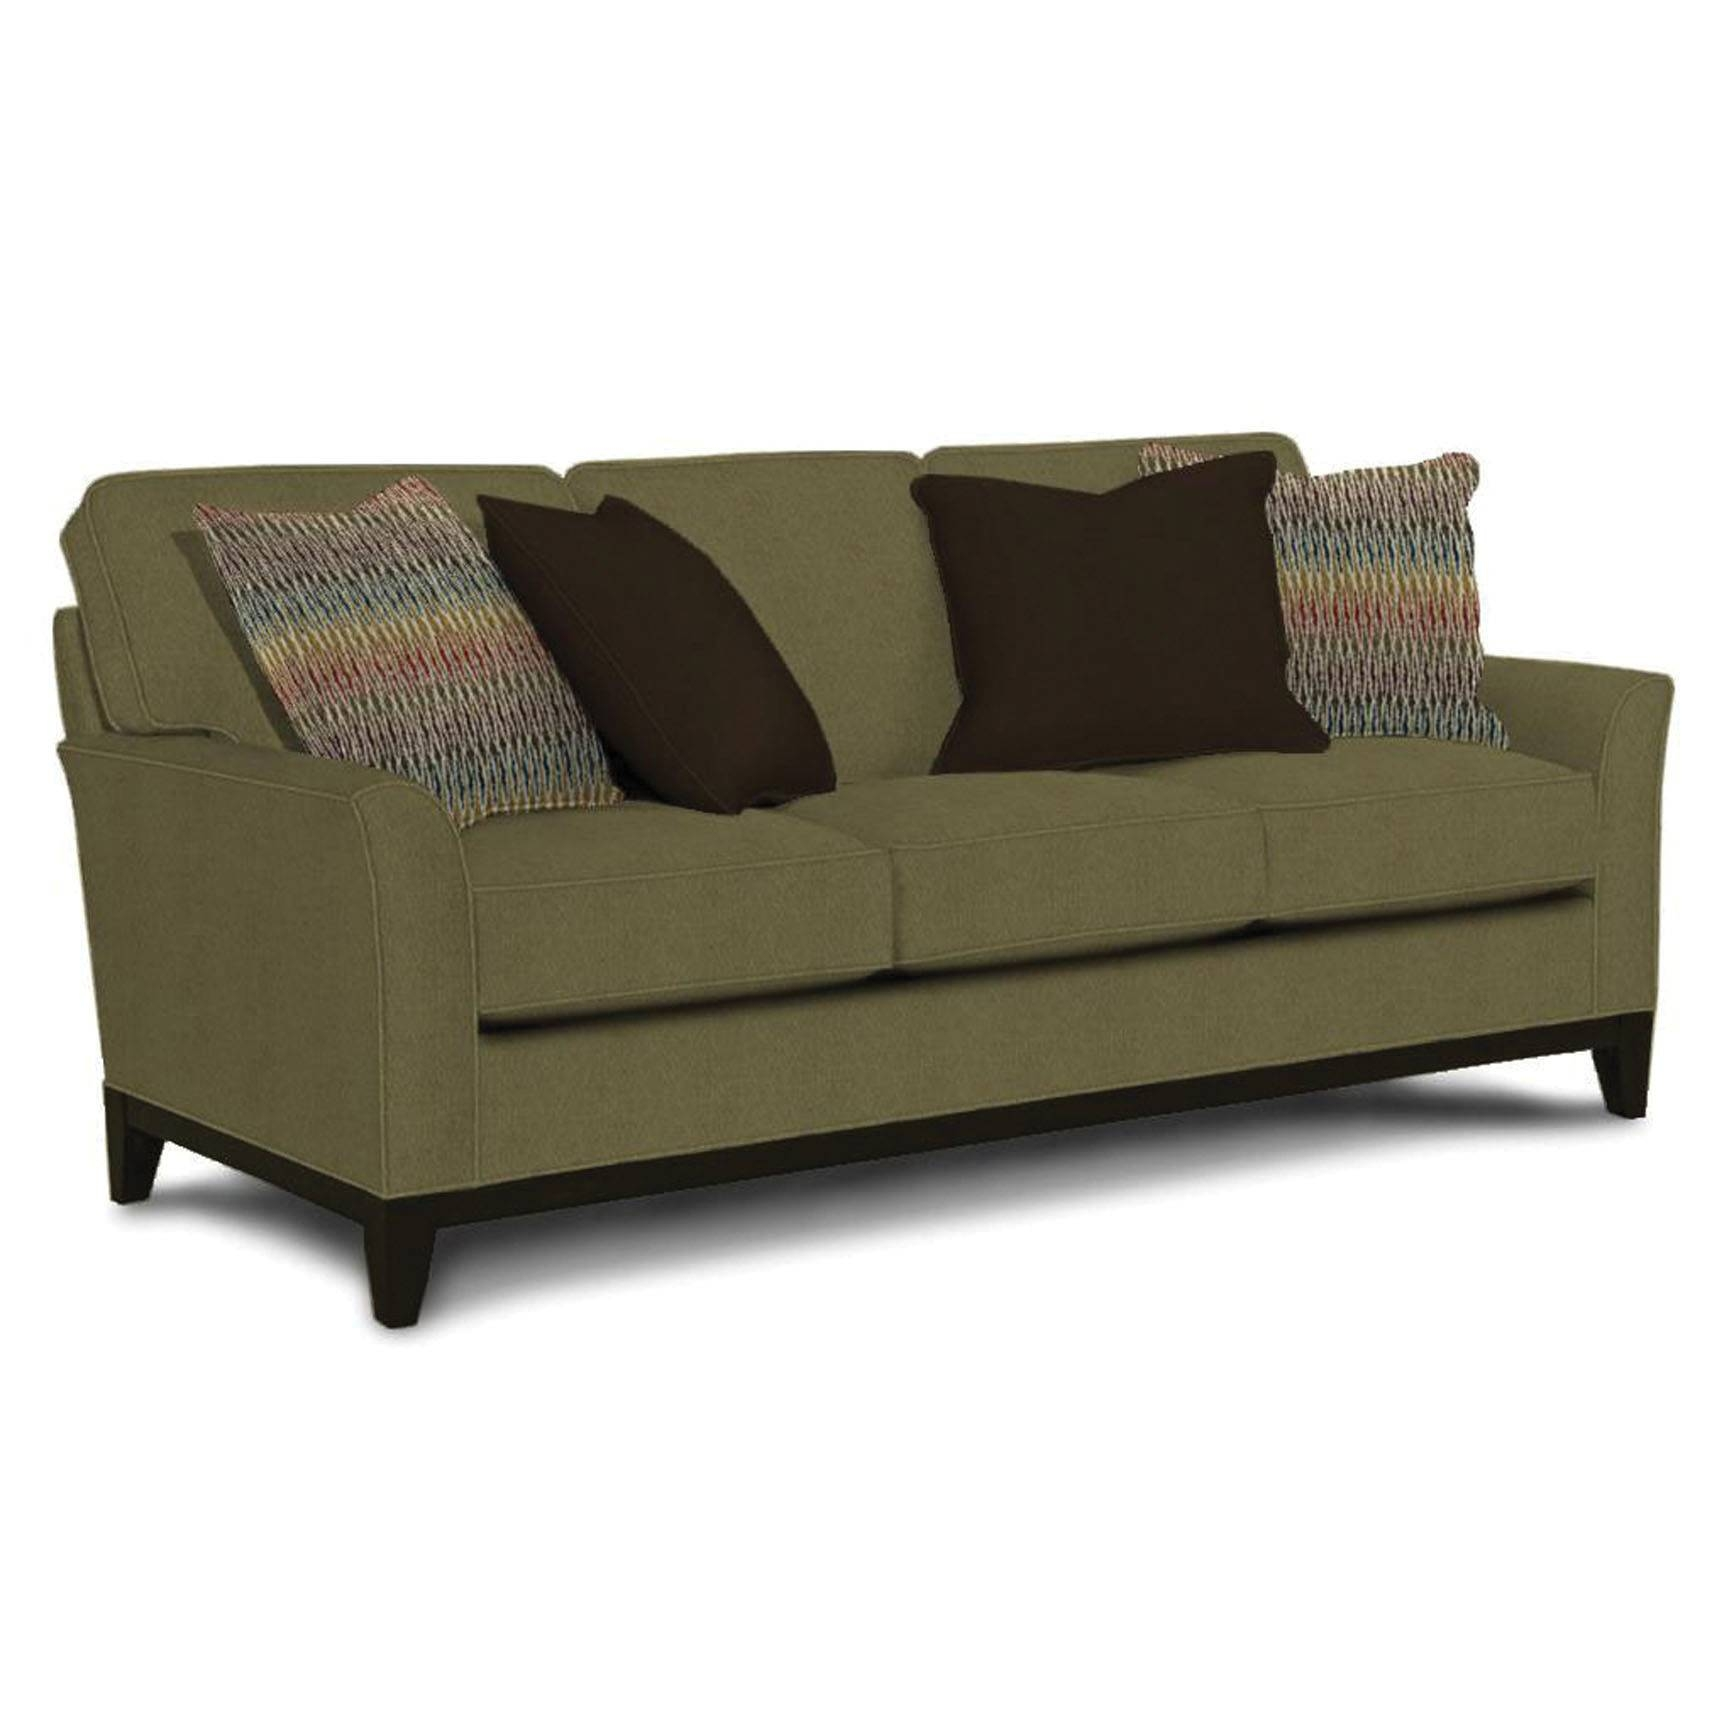 Wood Accent Sofa | Carolina Rustica regarding Broyhill Perspectives Sofas (Image 15 of 15)